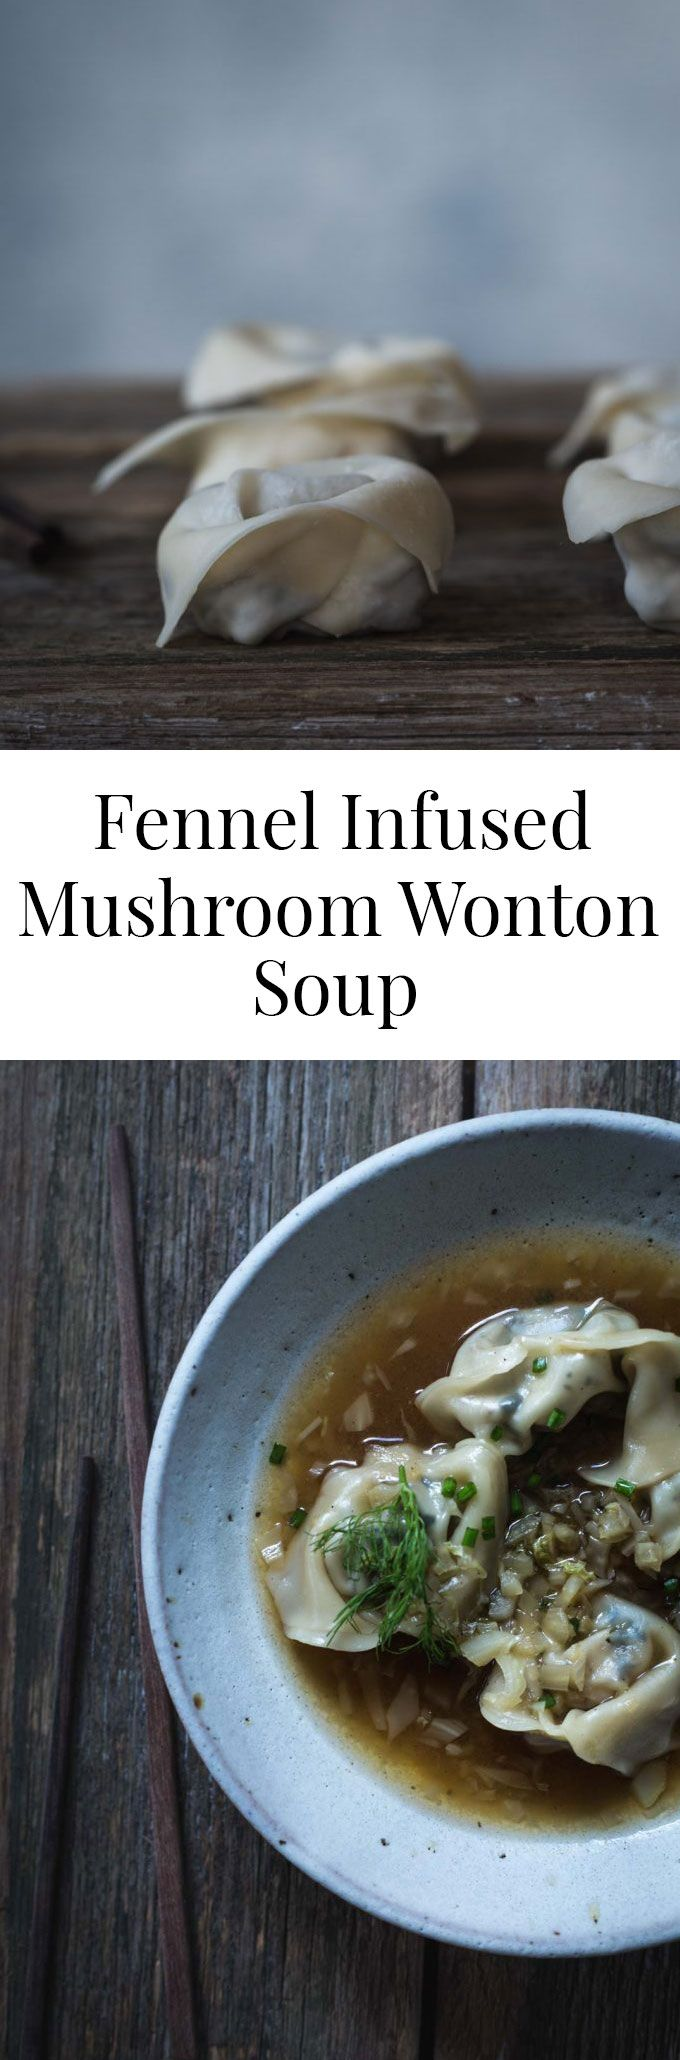 Make without tofu and soy sauce......This vegan Fennel Infused Mushroom Wonton Soup is simple. But with a fennel, slightly peppery broth and delicate mushroom wontons it's also a little special.